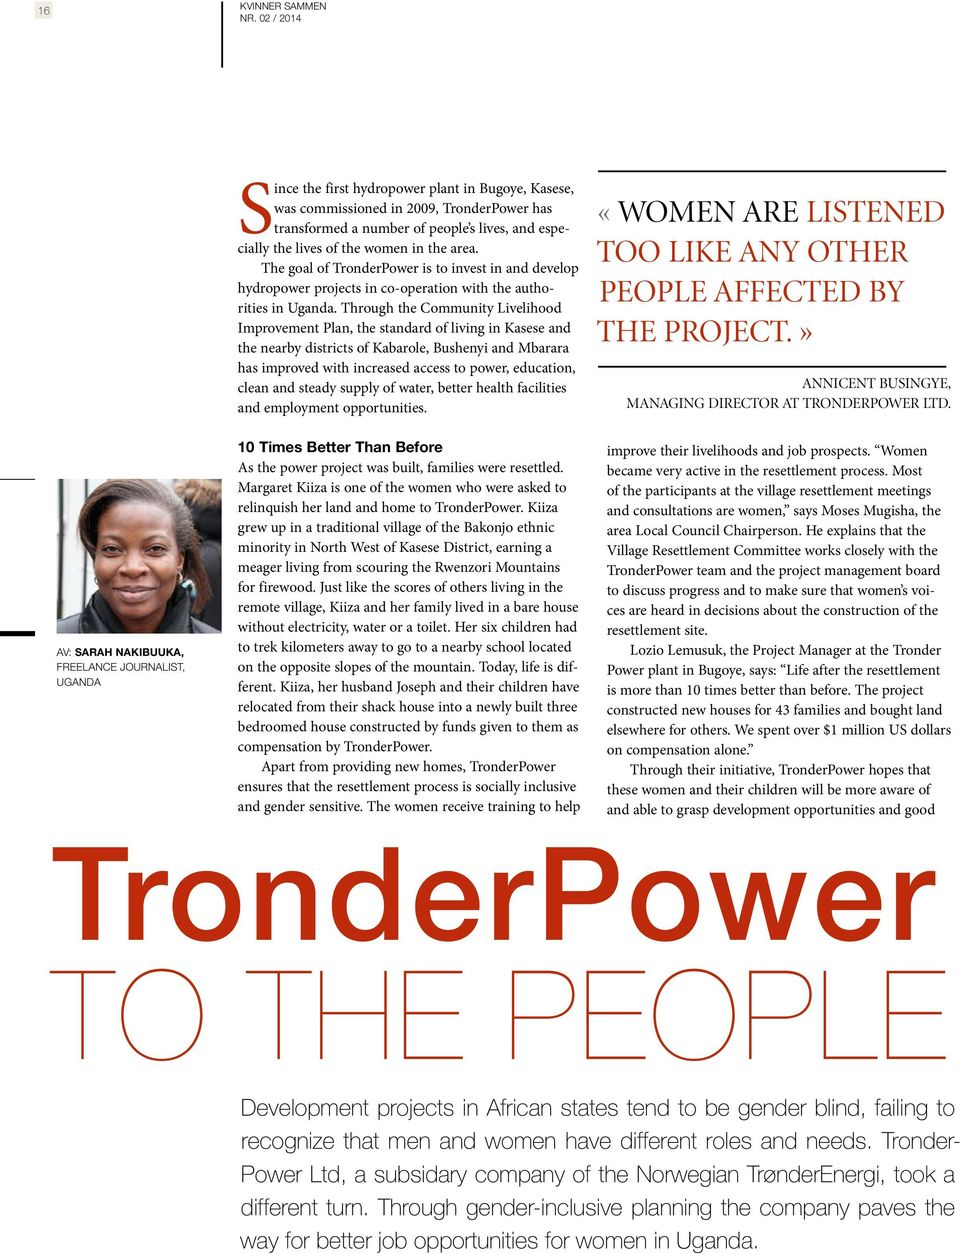 The goal of TronderPower is to invest in and develop hydropower projects in co-operation with the authorities in Uganda.